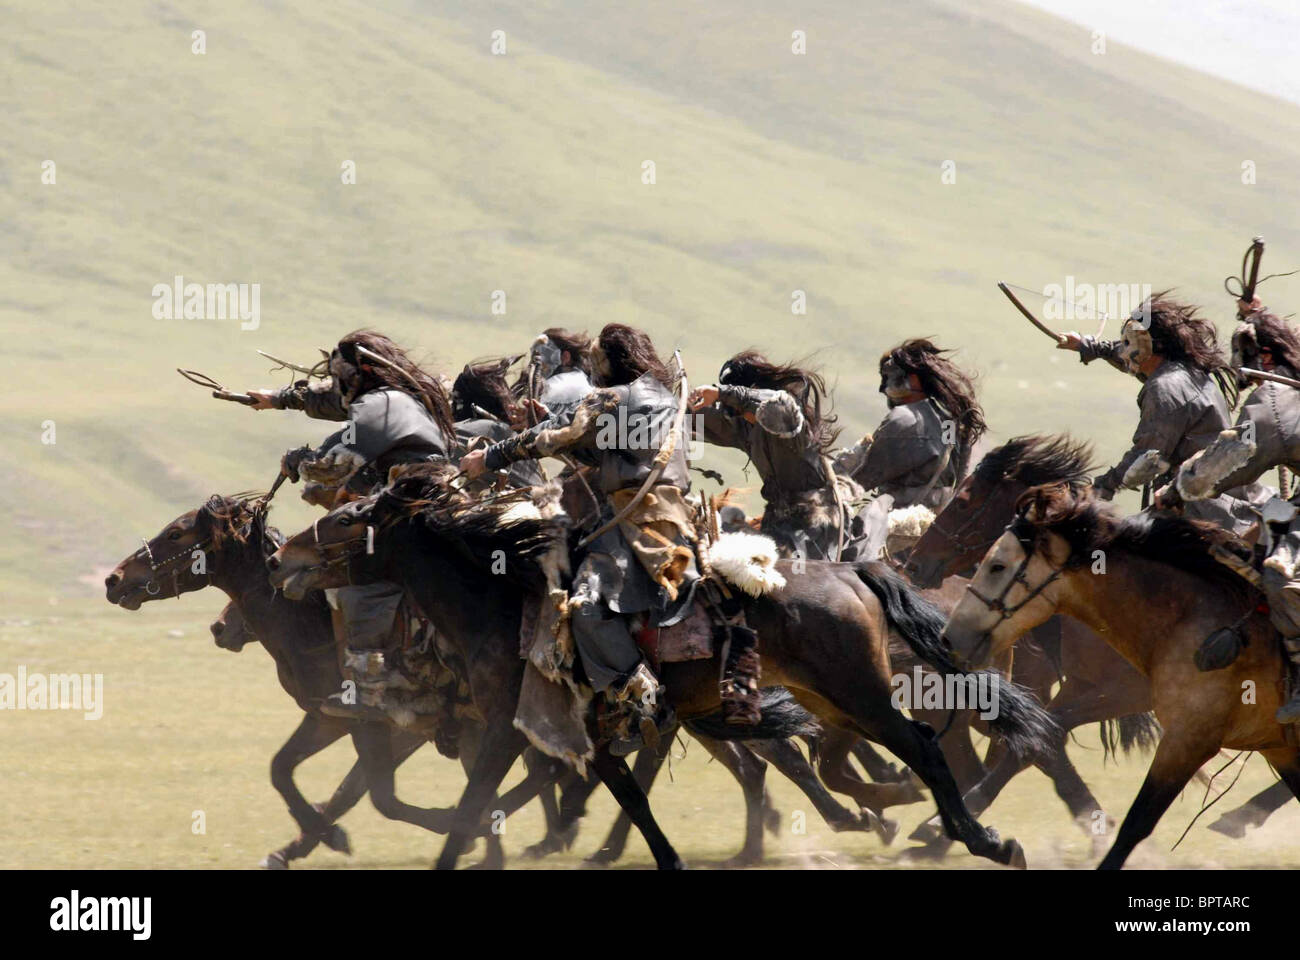 CHARGE DES CAVALIERS MONGOLS (2007) Photo Stock